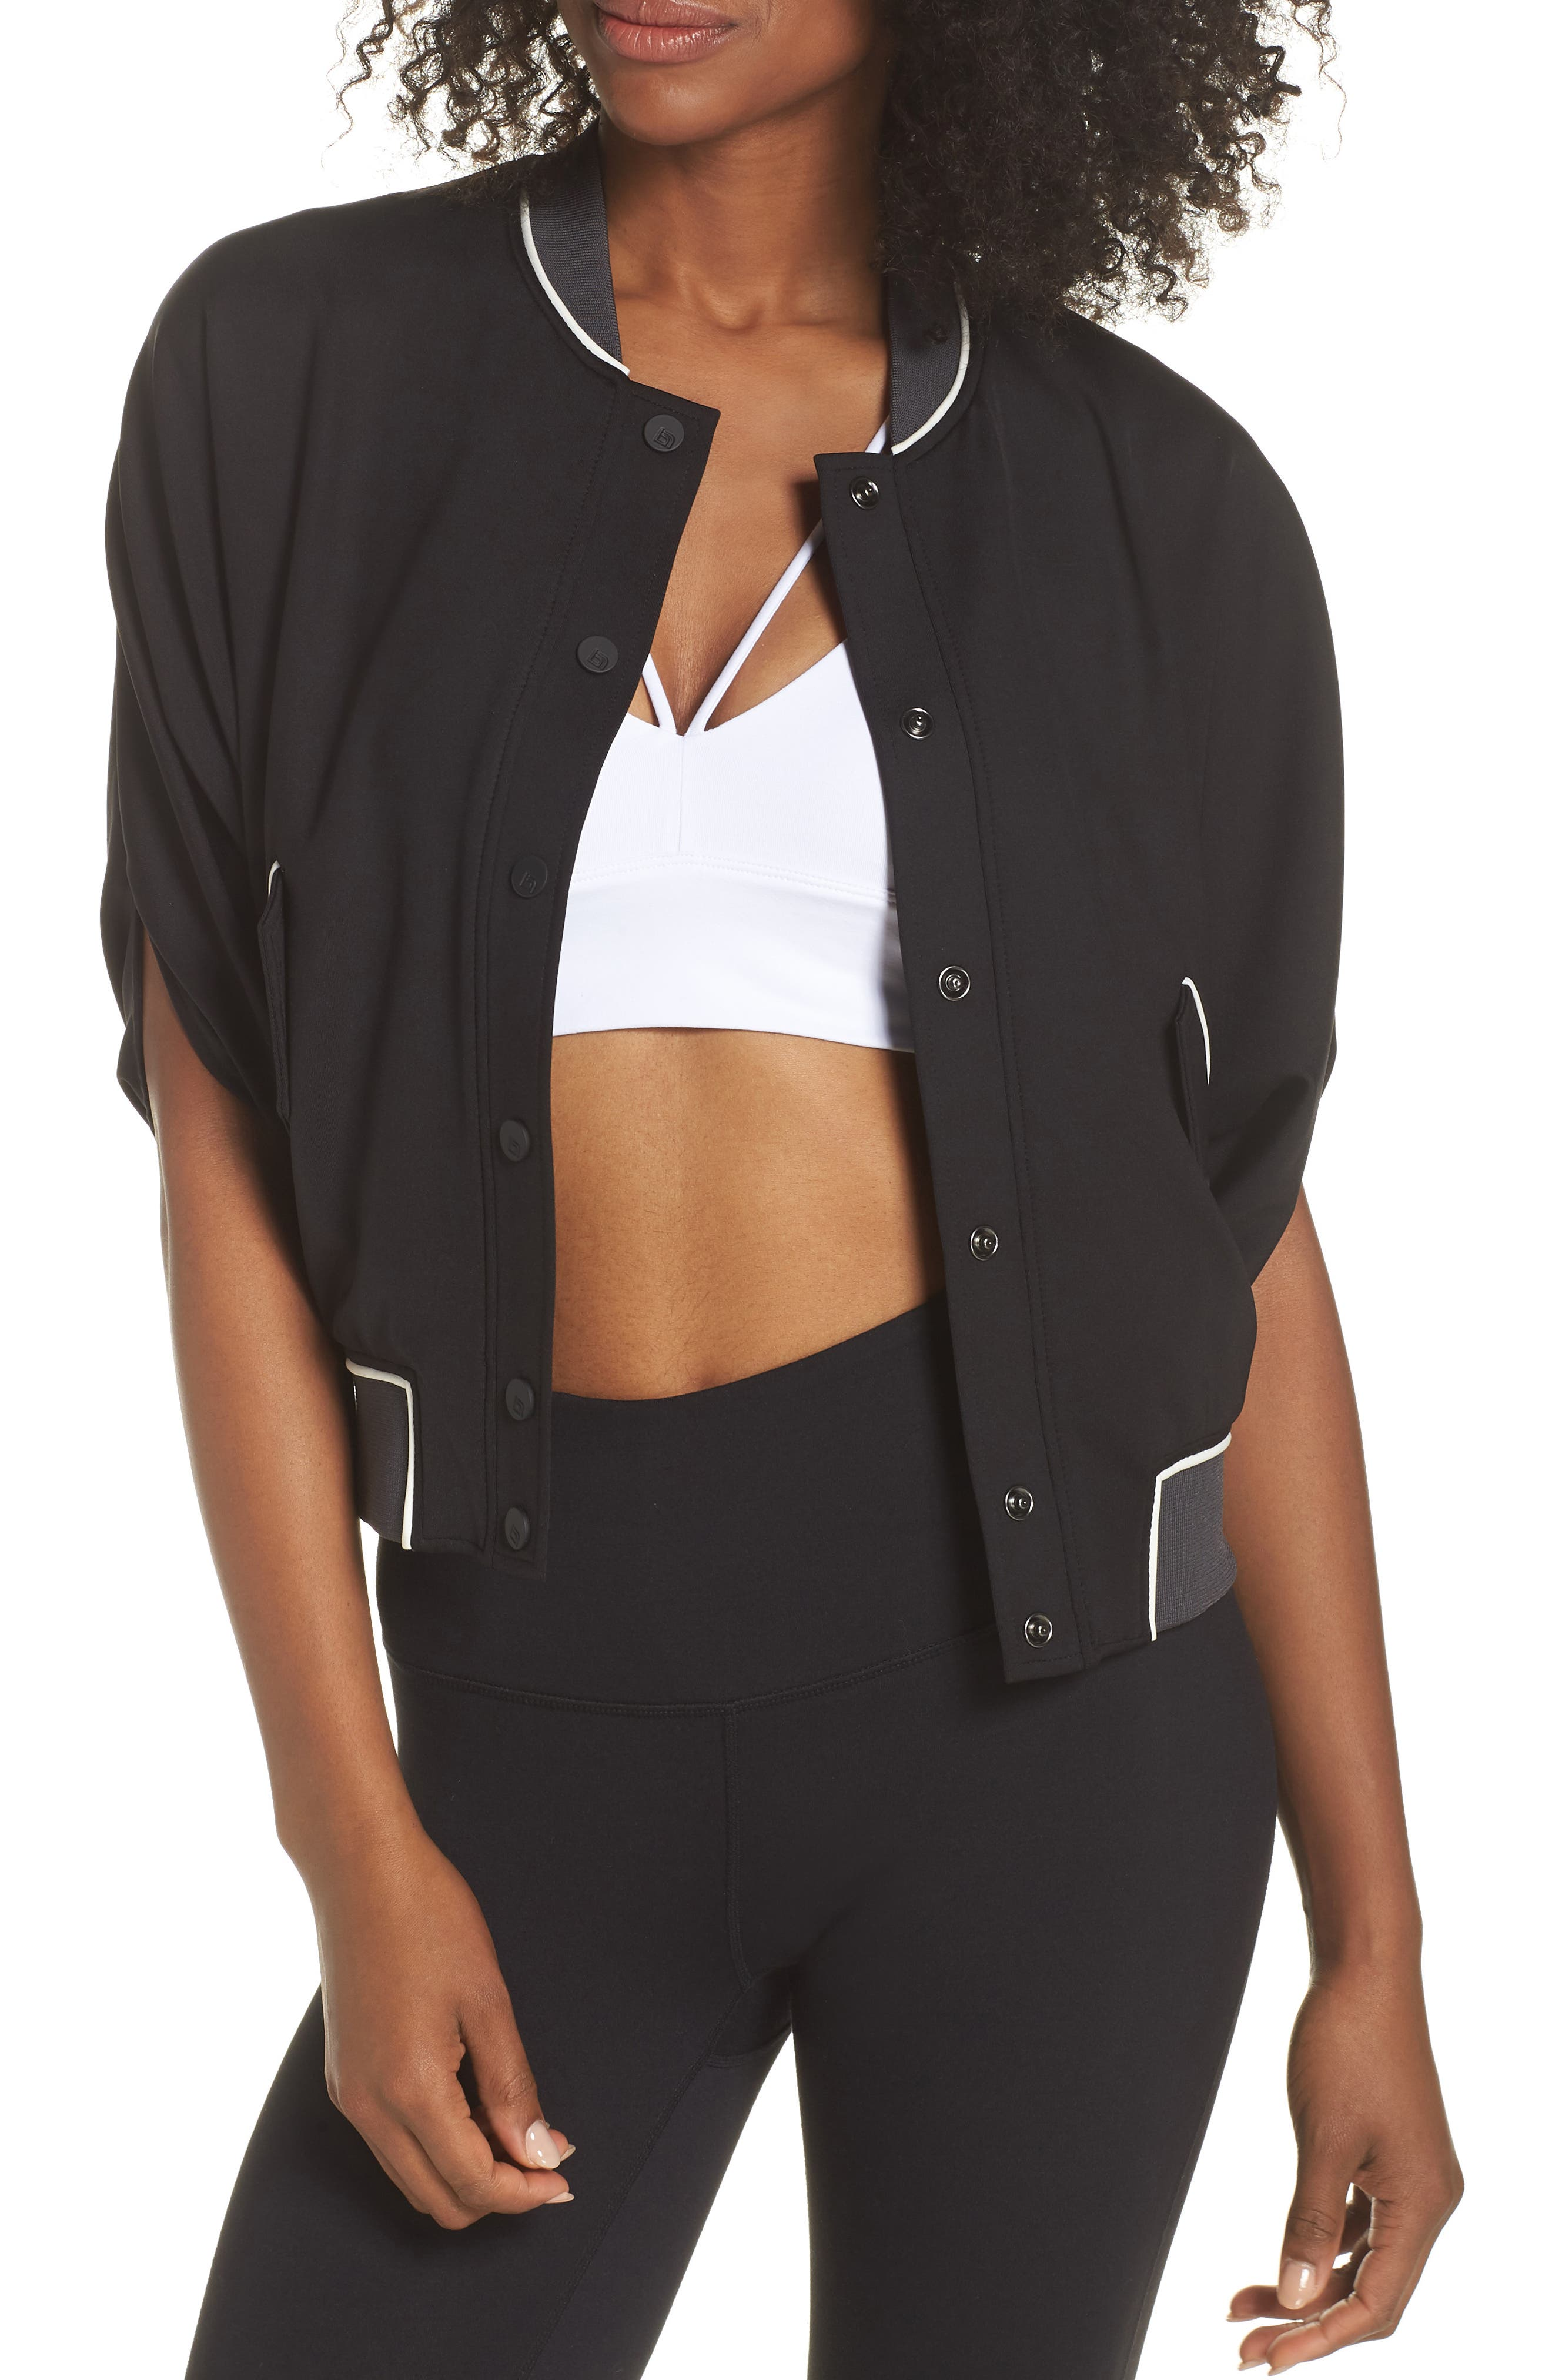 Butterfly Bomber Jacket,                         Main,                         color, Black/ Charcoal